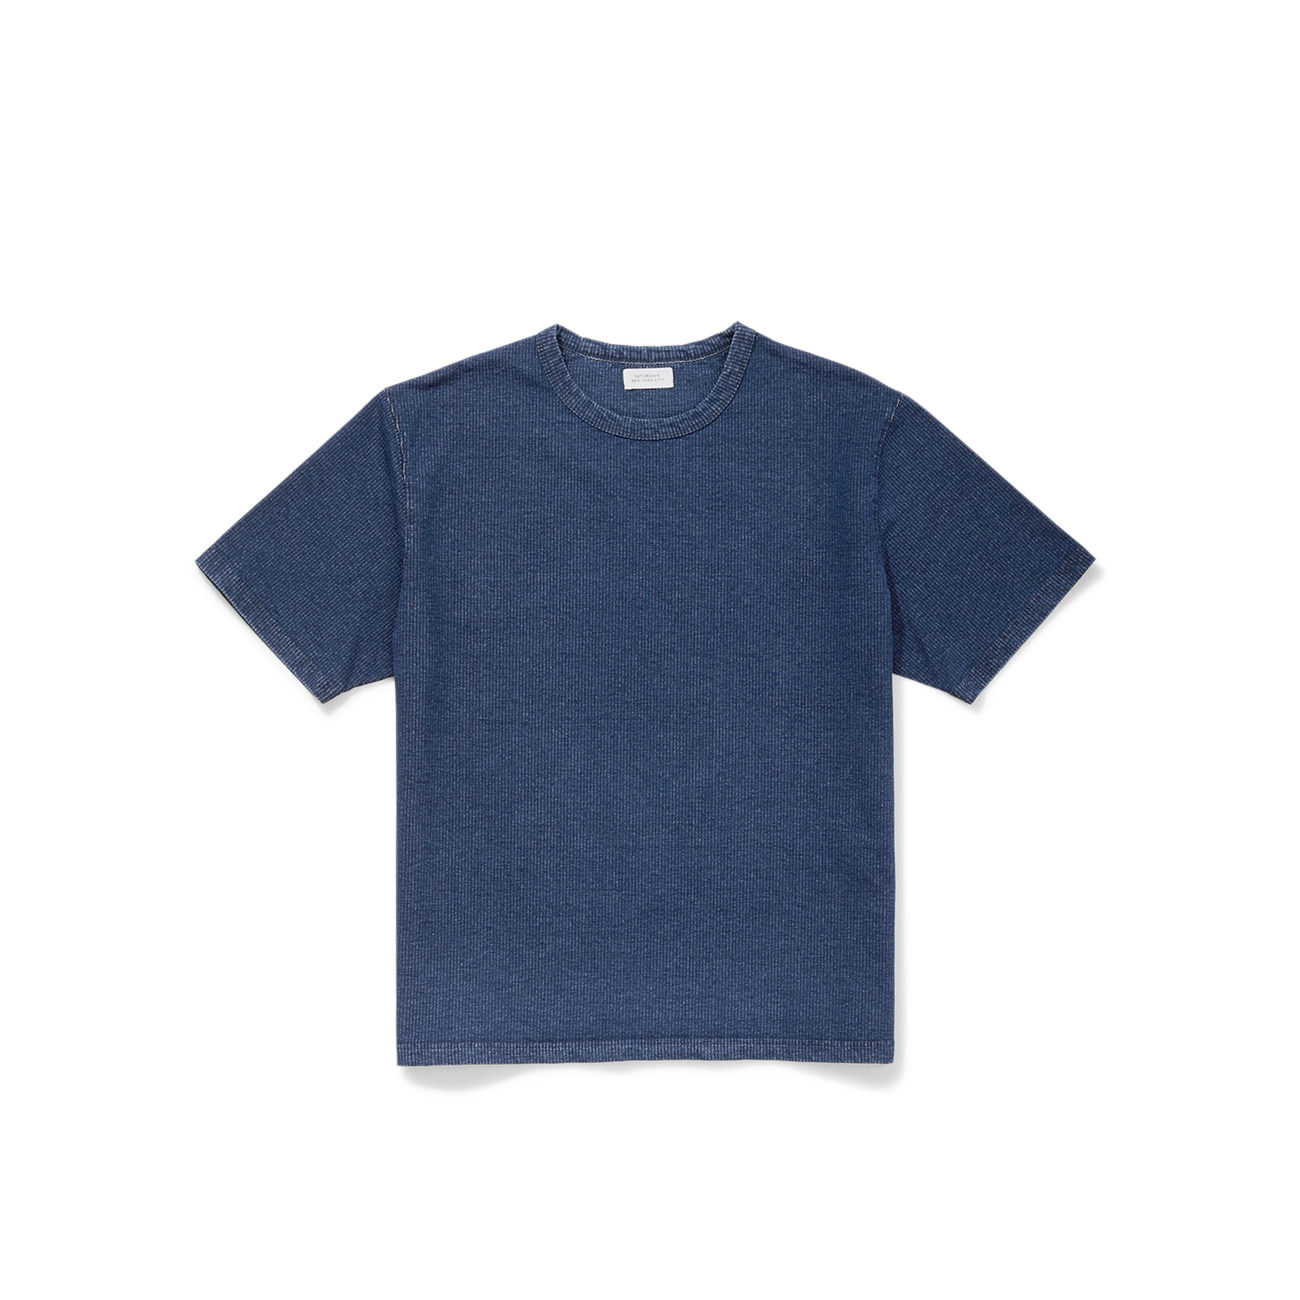 Elliot Indigo‑Dyed T-Shirt